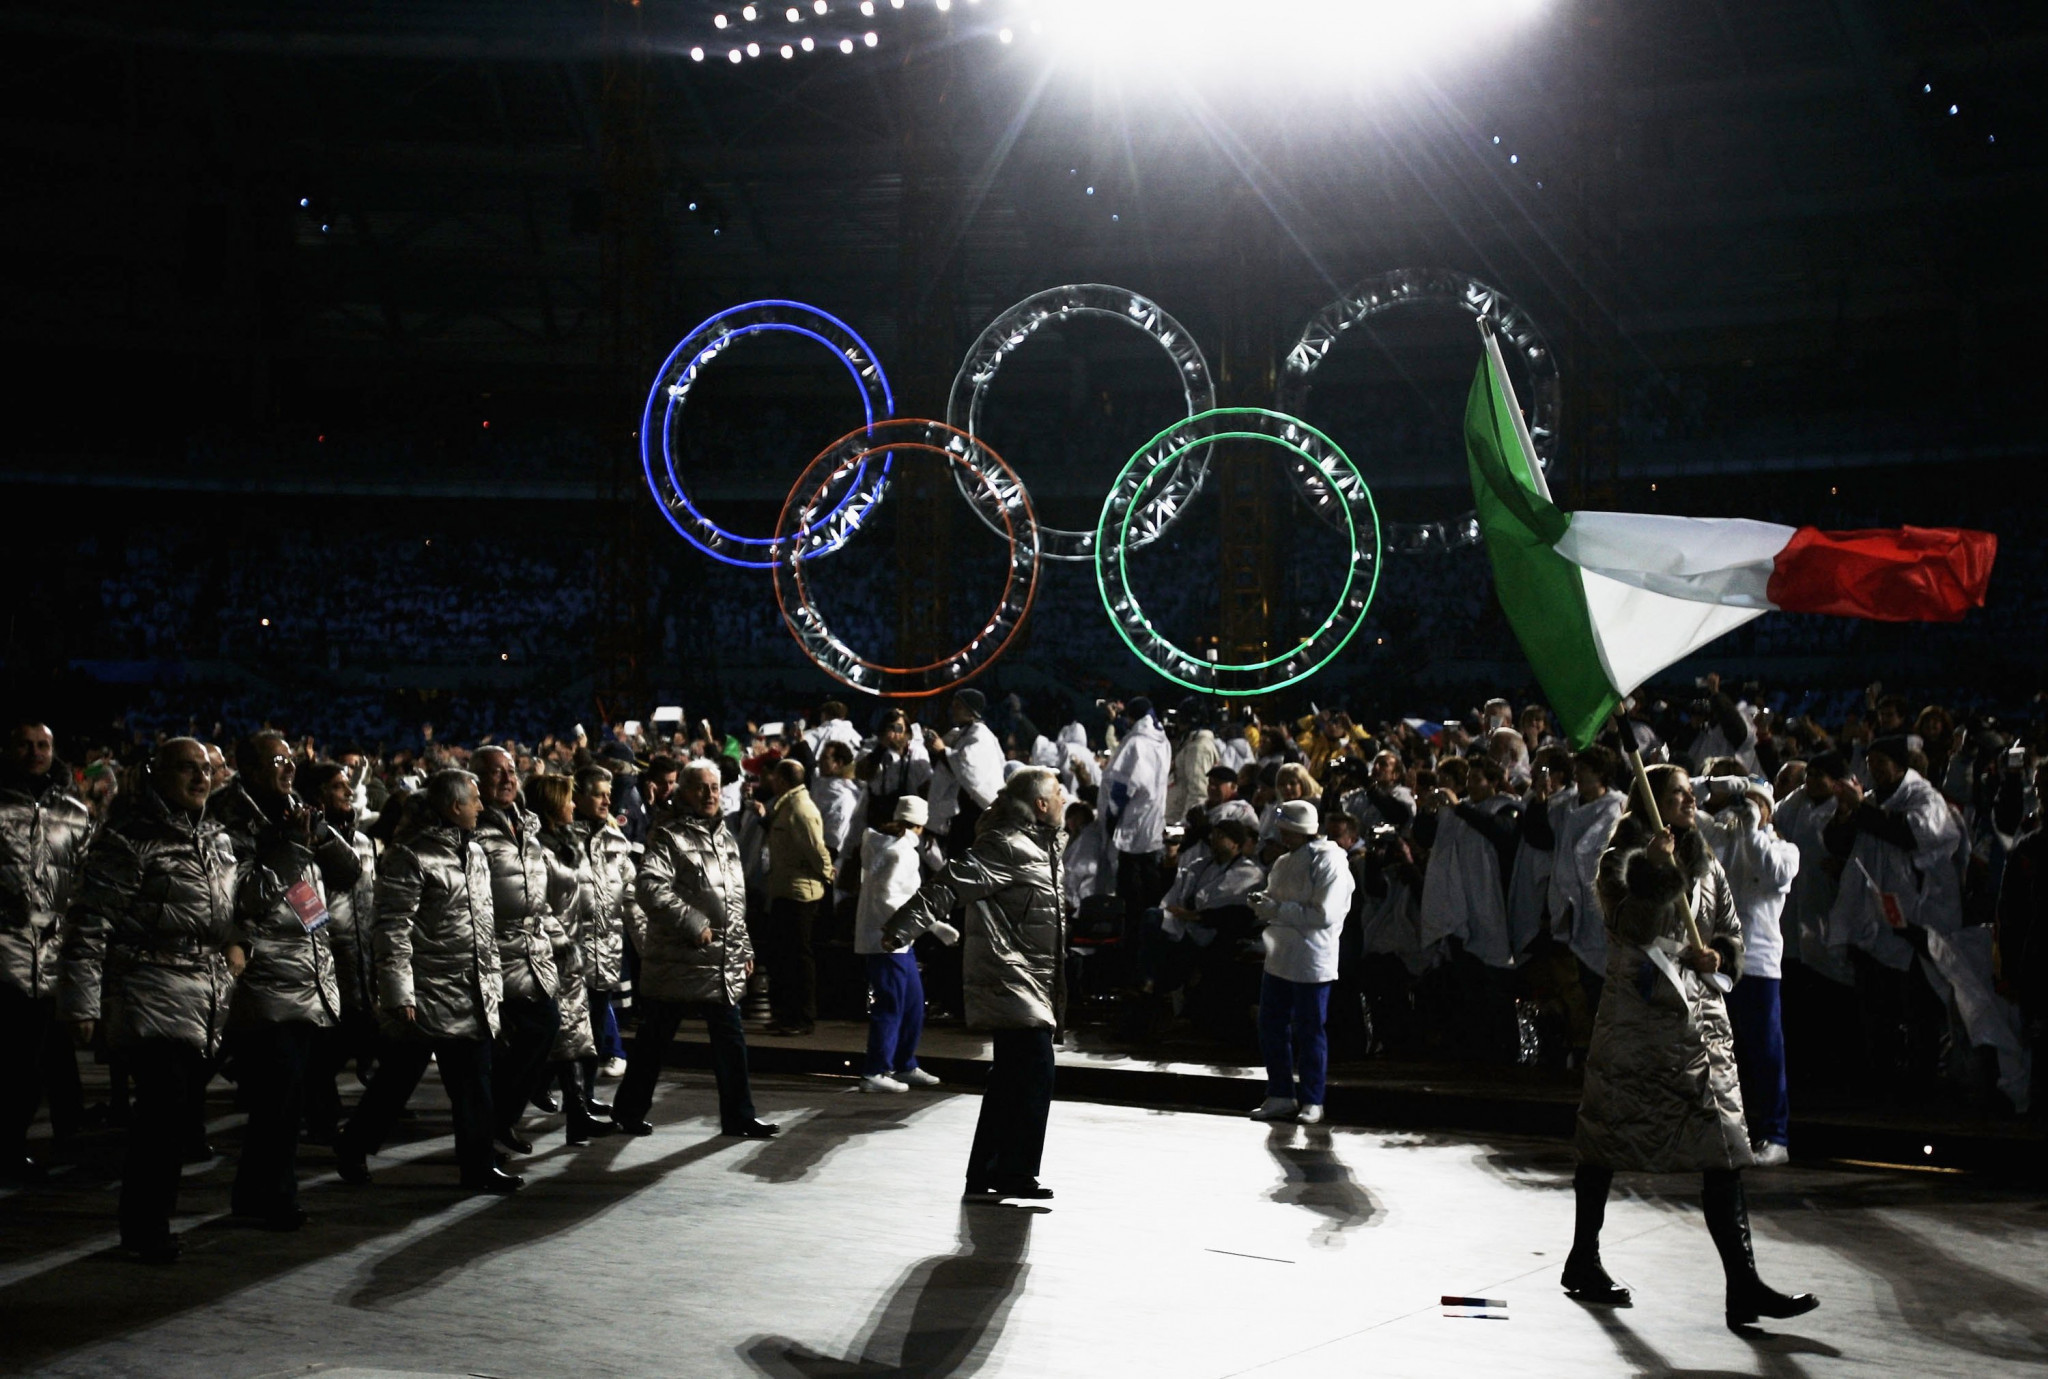 CONI President warns issues with controversial draft sports law not solved by Sports Minister's letter to IOC